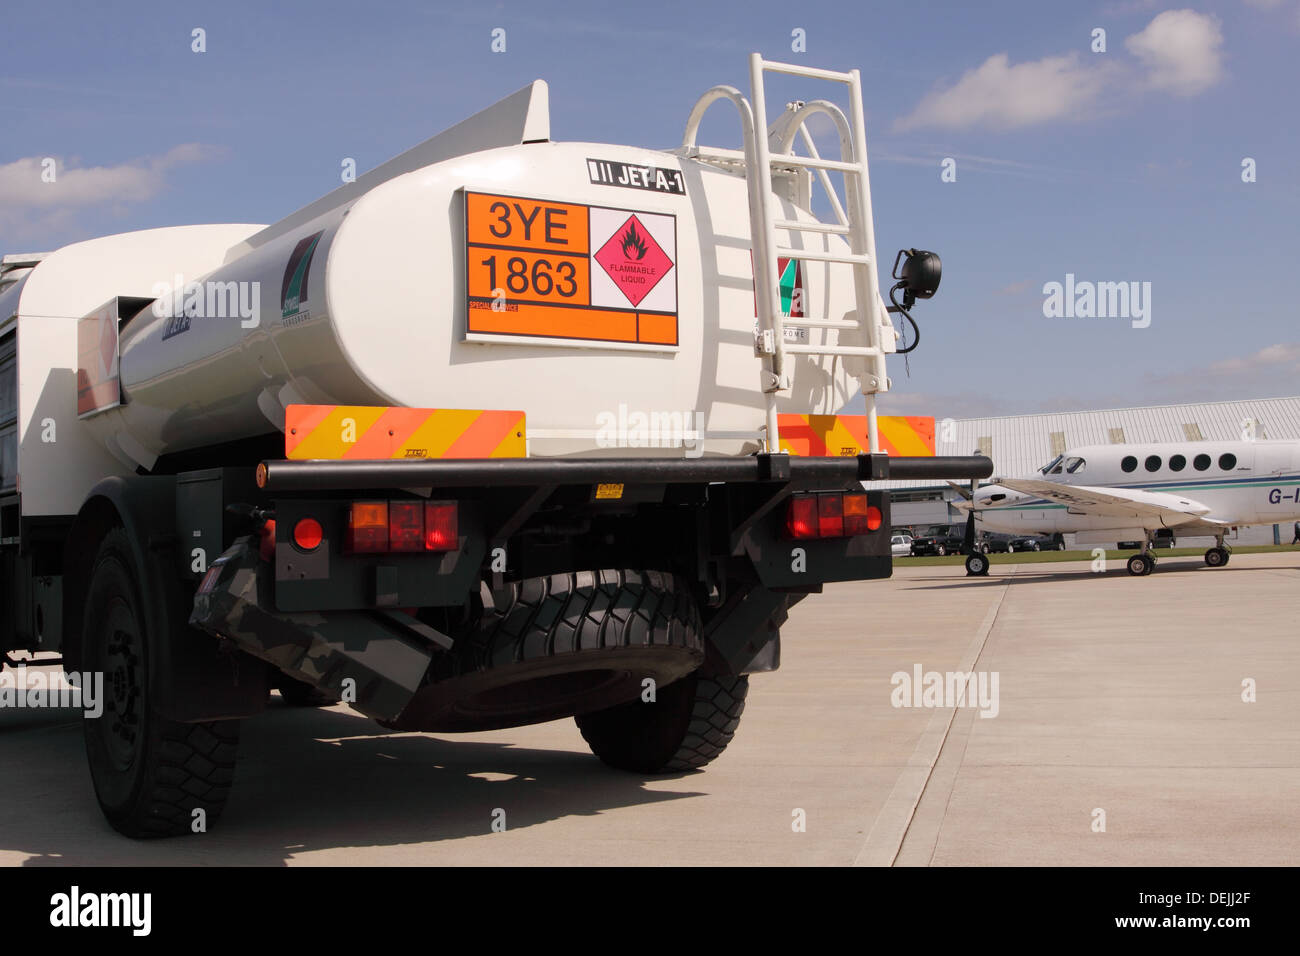 Airport aviation fuel truck with JET A1 aero fuel and HAZCHEM sign at airport in UK Stock Photo